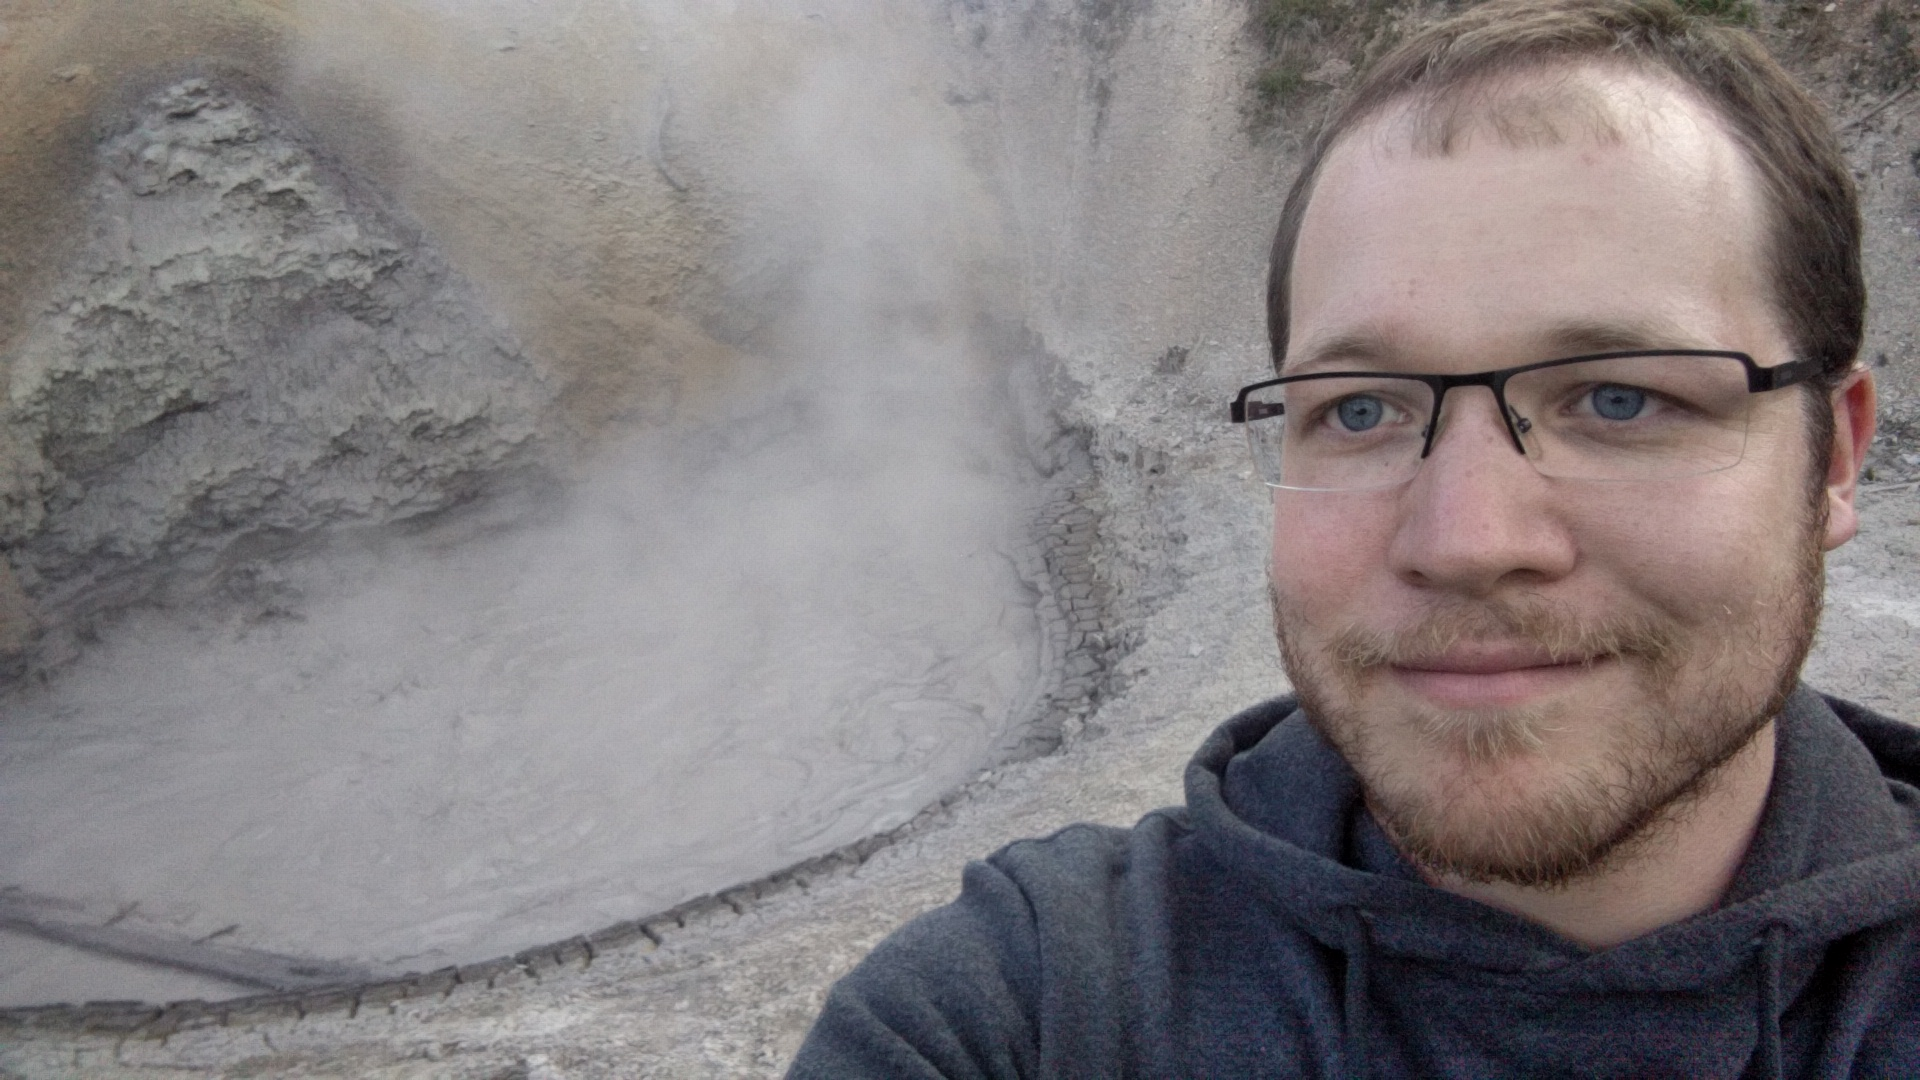 Mud Volcano, apparently it used to shoot mud up in the air and now it just bubbles.